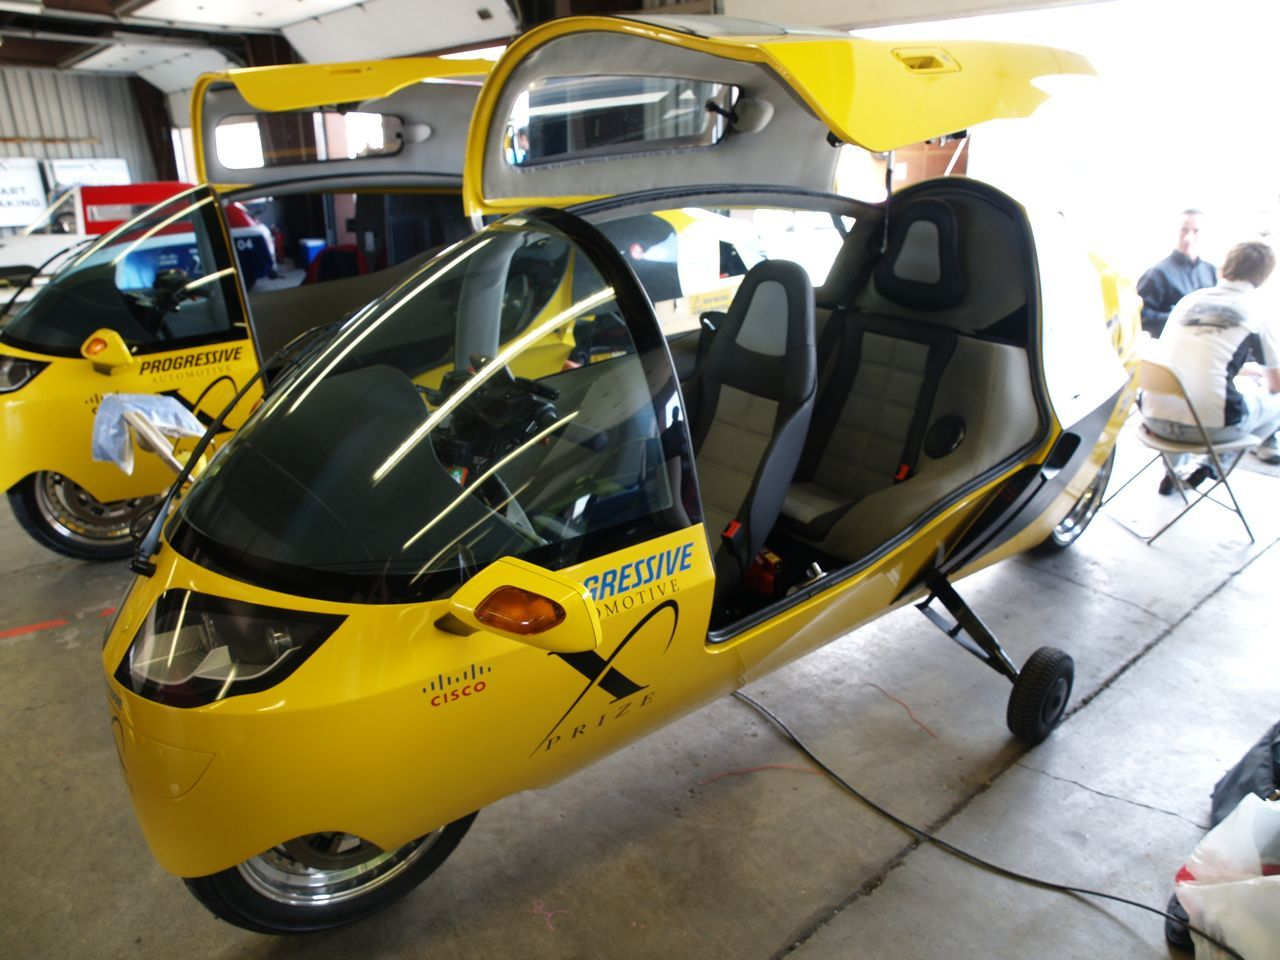 Peraves Monotracer Price Thread Ag Etracer Dogs You The Bmw I1 Is An Electric Singleseater Trikecar Concept By Designer